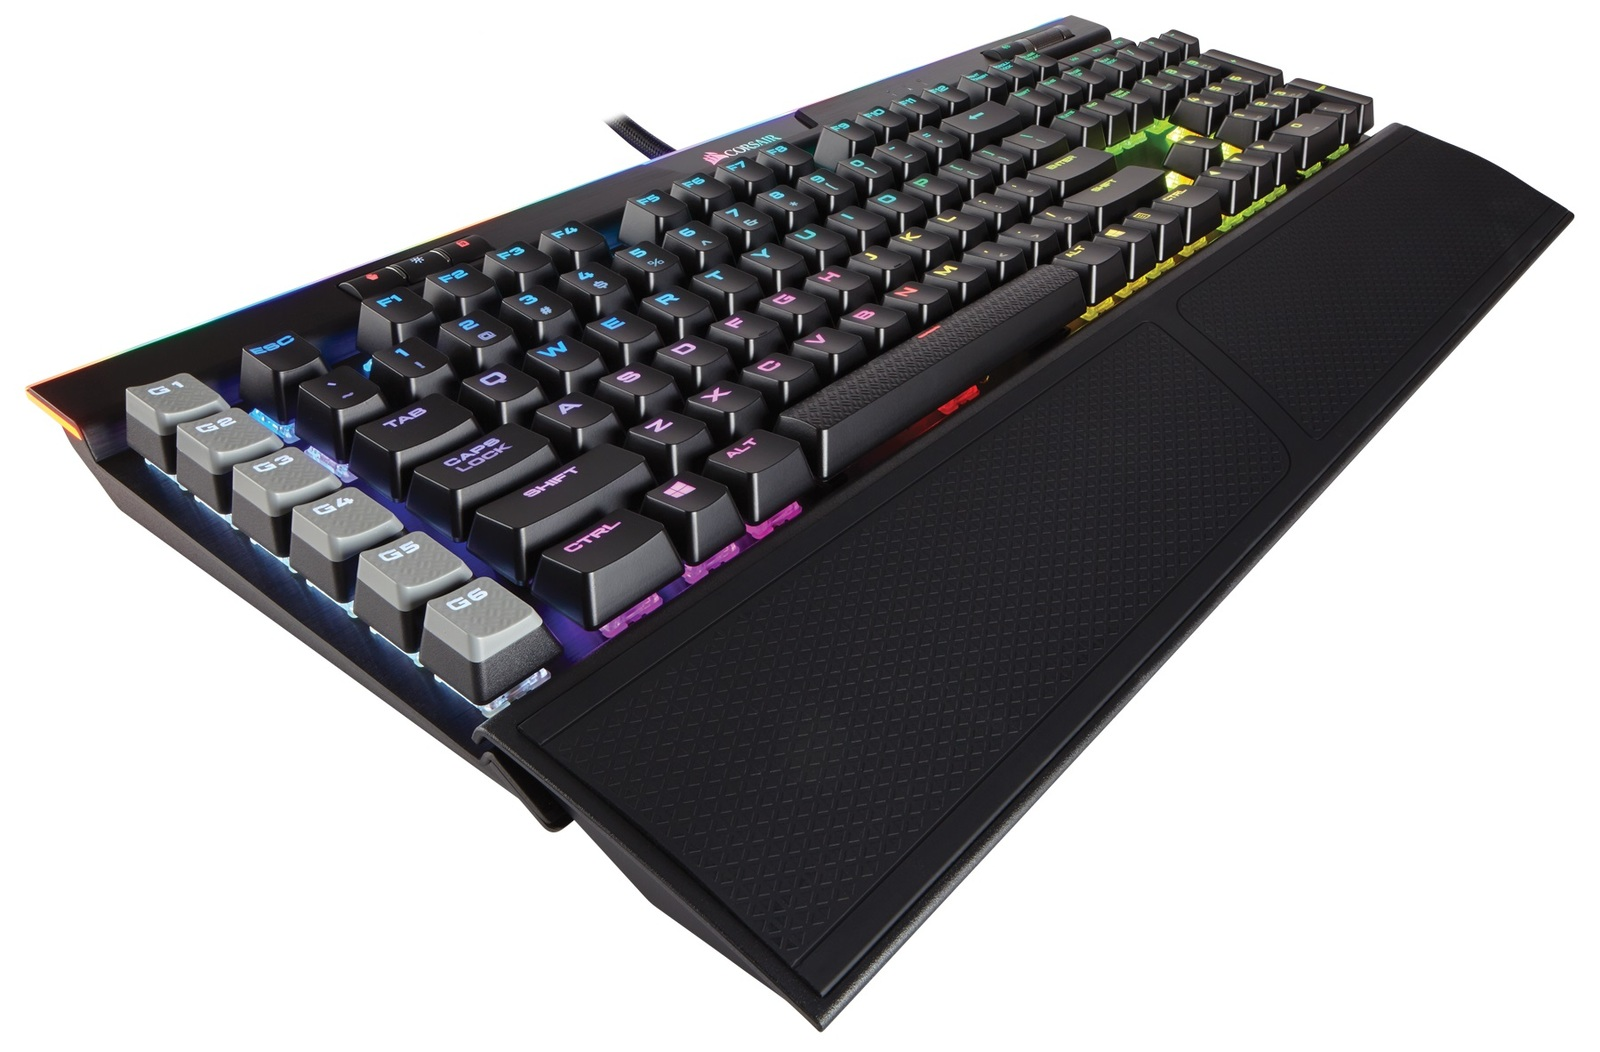 Corsair K95 RGB Platinum Gaming Keyboard (Cherry MX Speed) for PC Games image